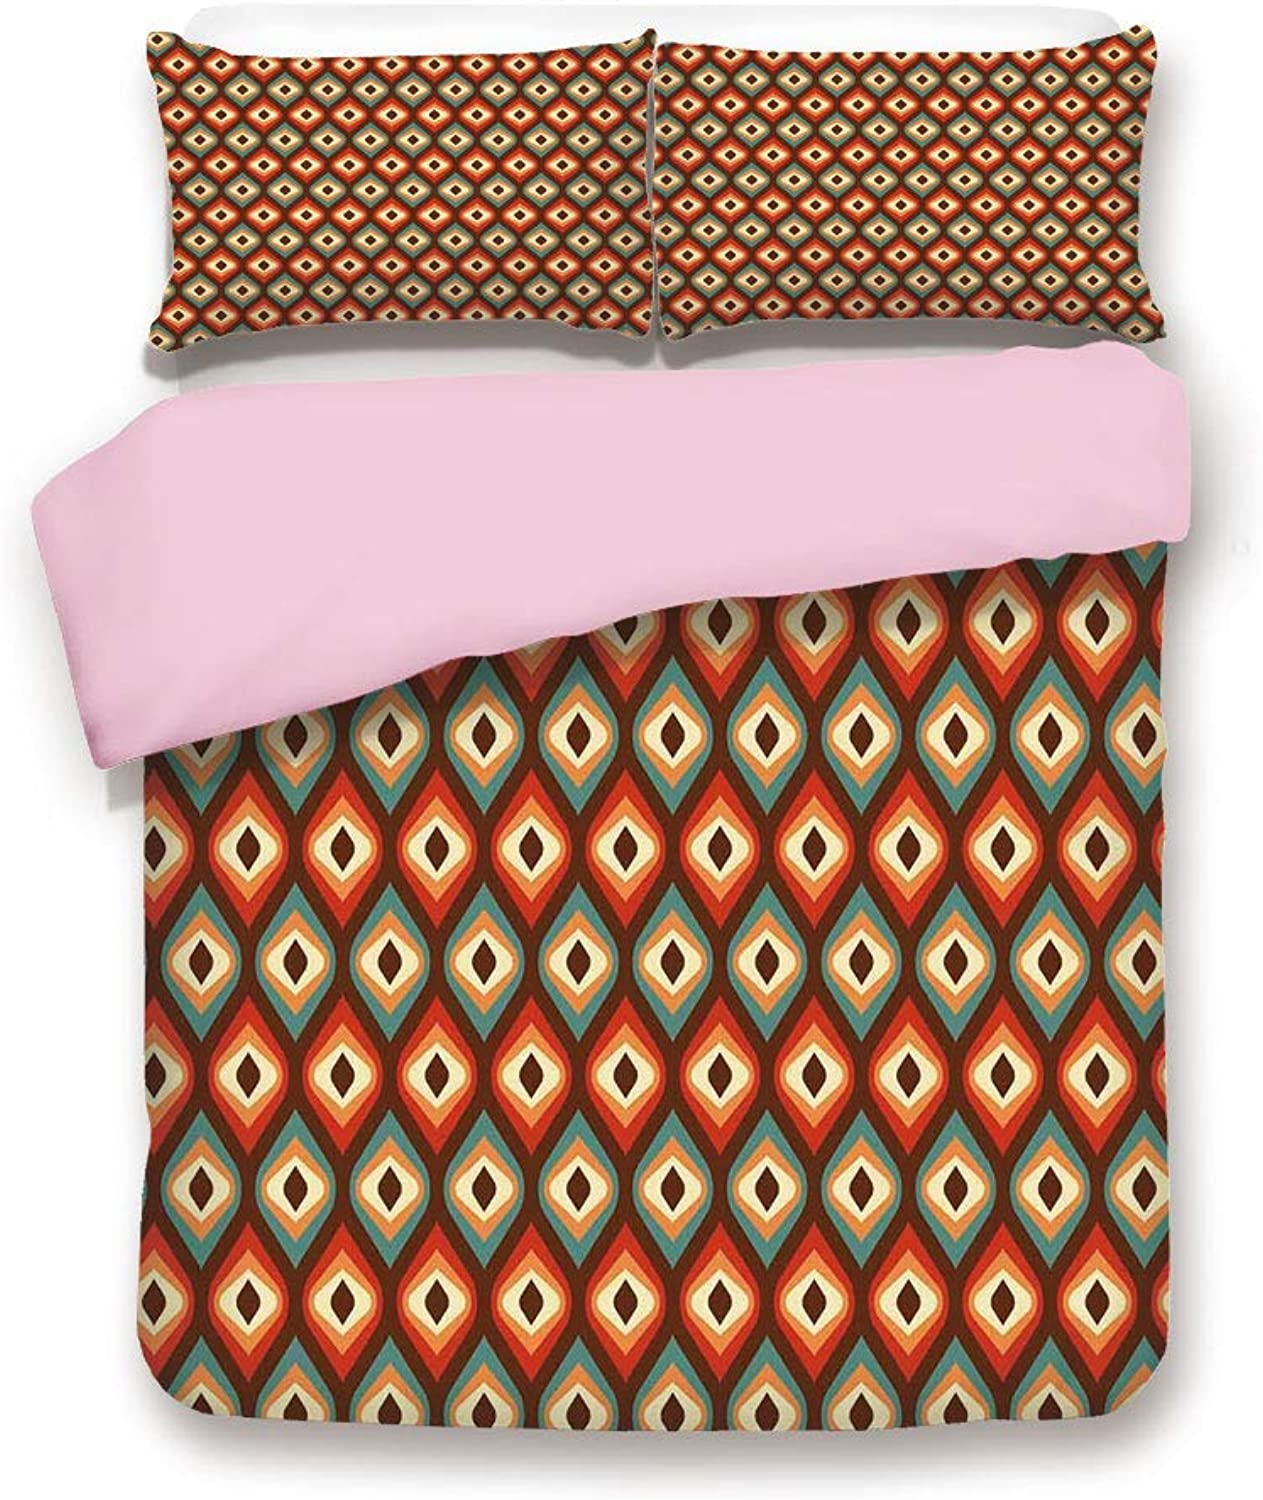 Pink Pink Pink Duvet Cover Set,Twin Size,Funky Unusual Shapes in Vibrant colors Oval Elliptic Forms Nested greenical Pattern,Decorative 3 Piece Bedding Set with 2 Pillow Sham,Best Gift For Girls Women,Multicolor a74413